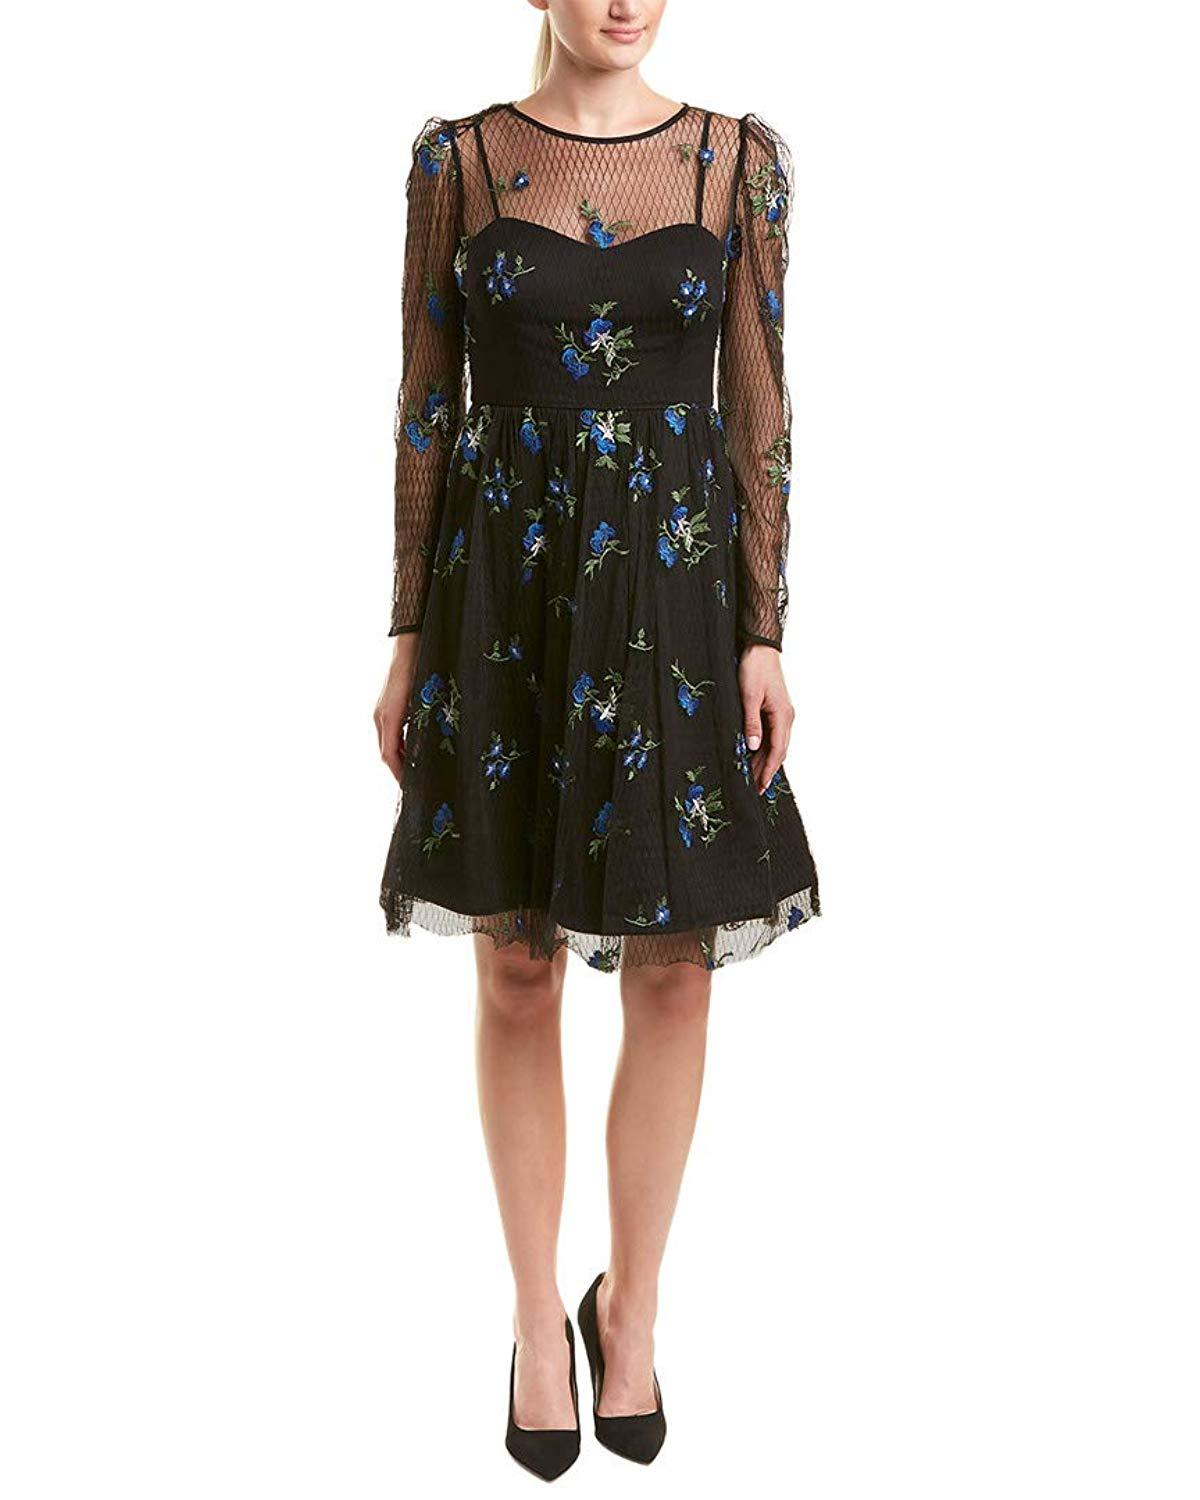 Taylor - 9862M Knee Length Puff Sleeve Illusion Embroidered Dress In Blue and Black